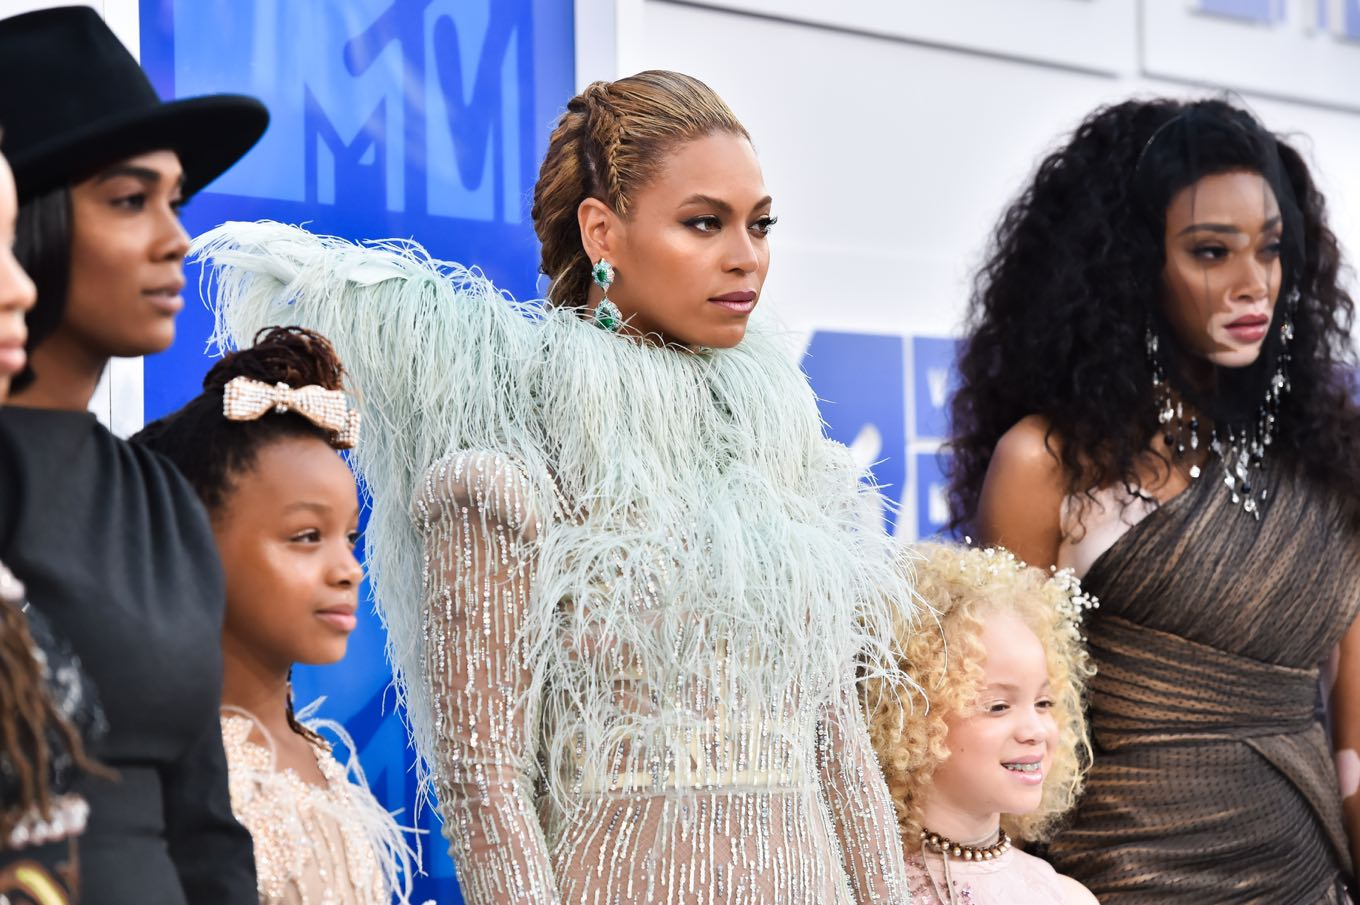 The 10 Best Moments of the 2016 MTV VMAs